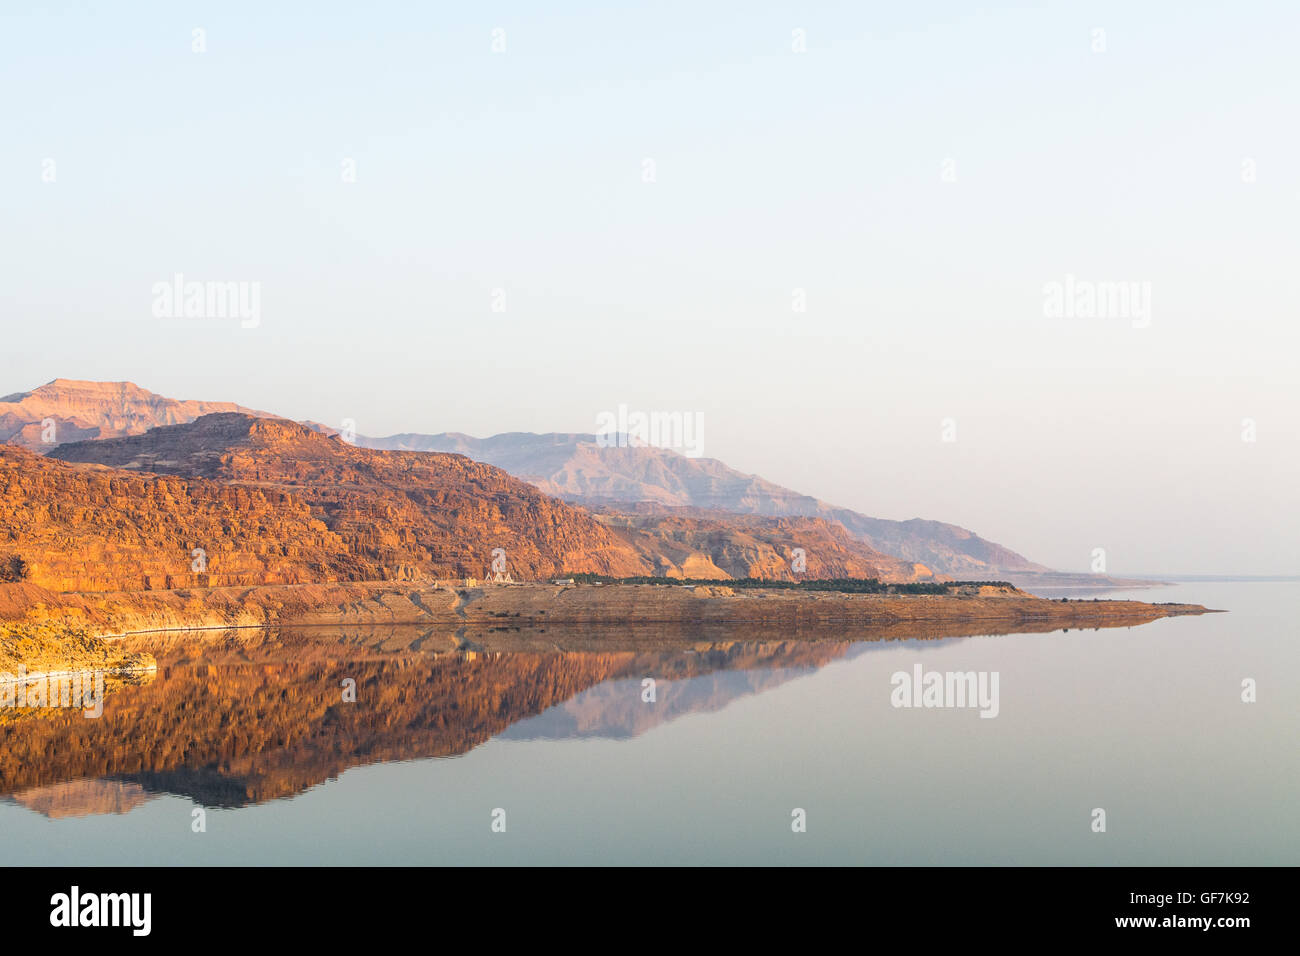 Scenic View Of Calm Dead Sea Reflections Against Clear Sky - Stock Image